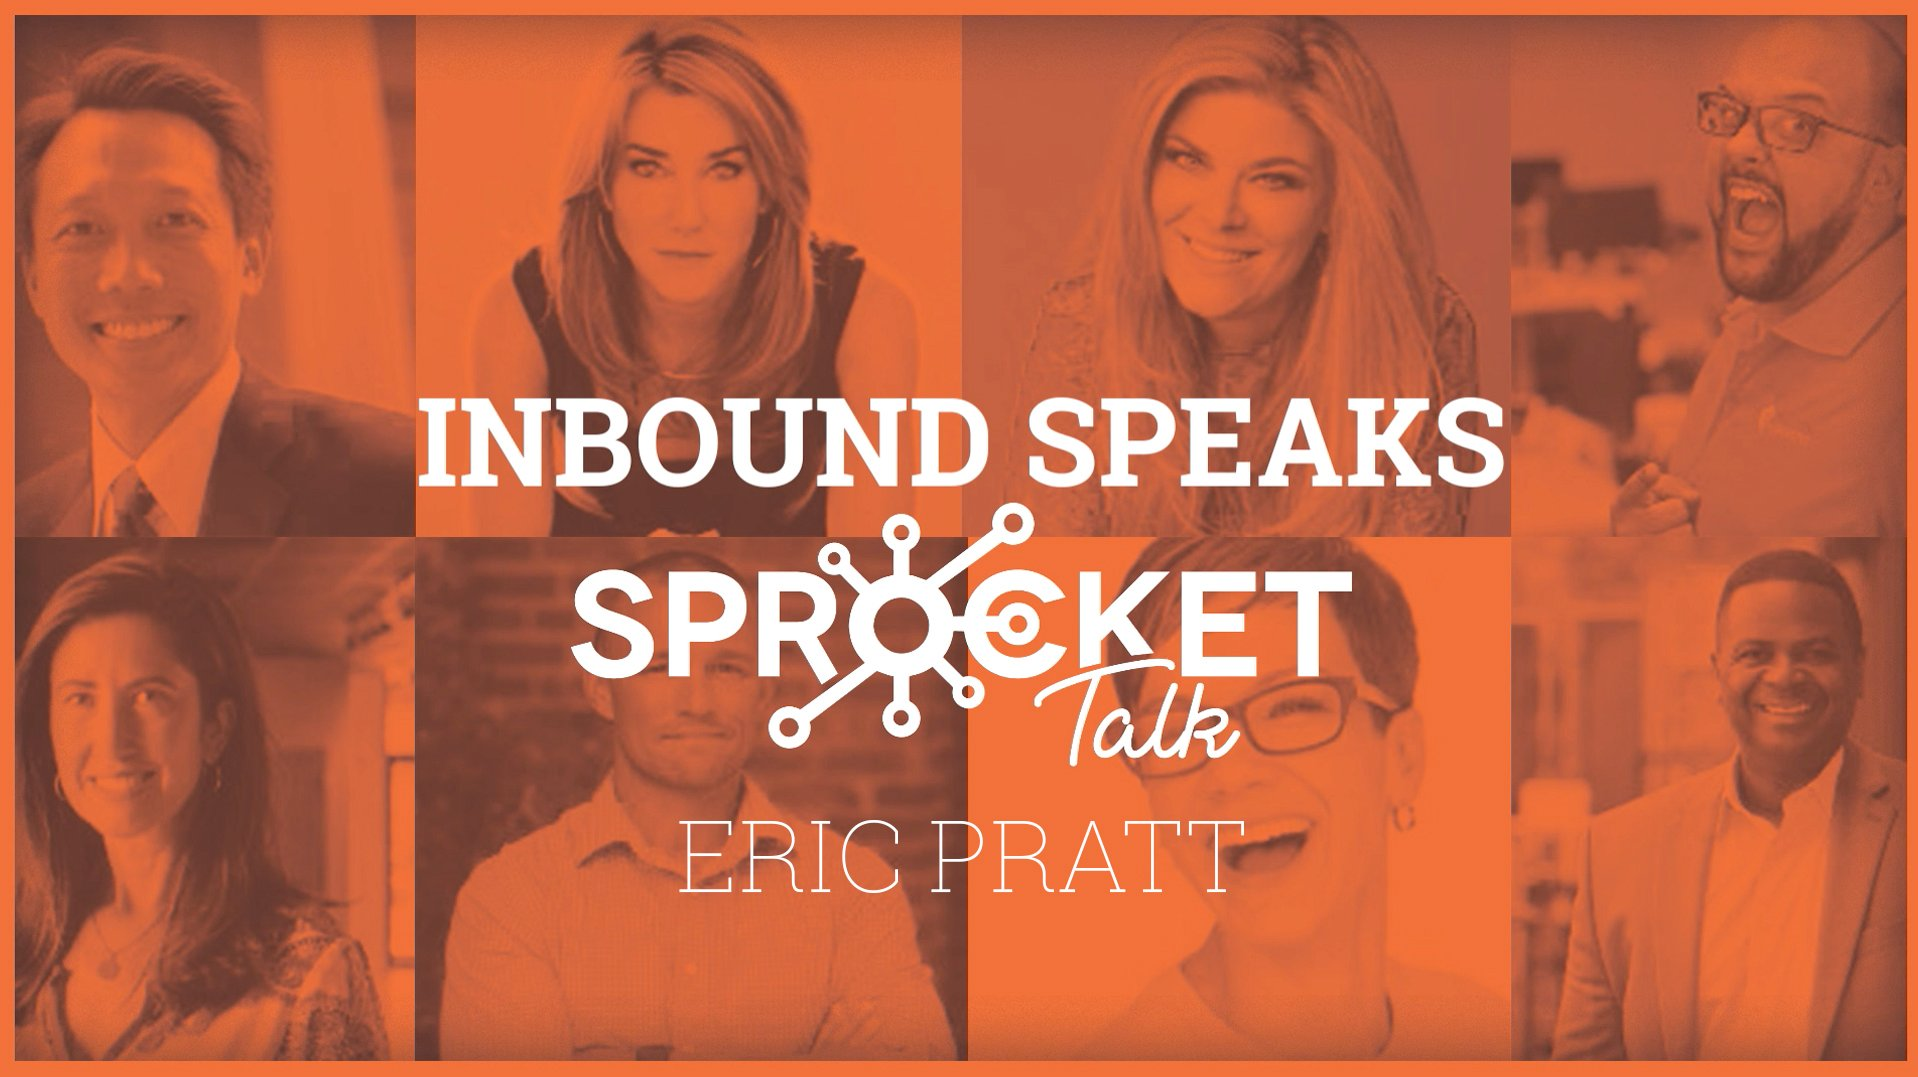 Eric Pratt Interactive Agency Talk – Unpacking What We Learned At #INBOUND19